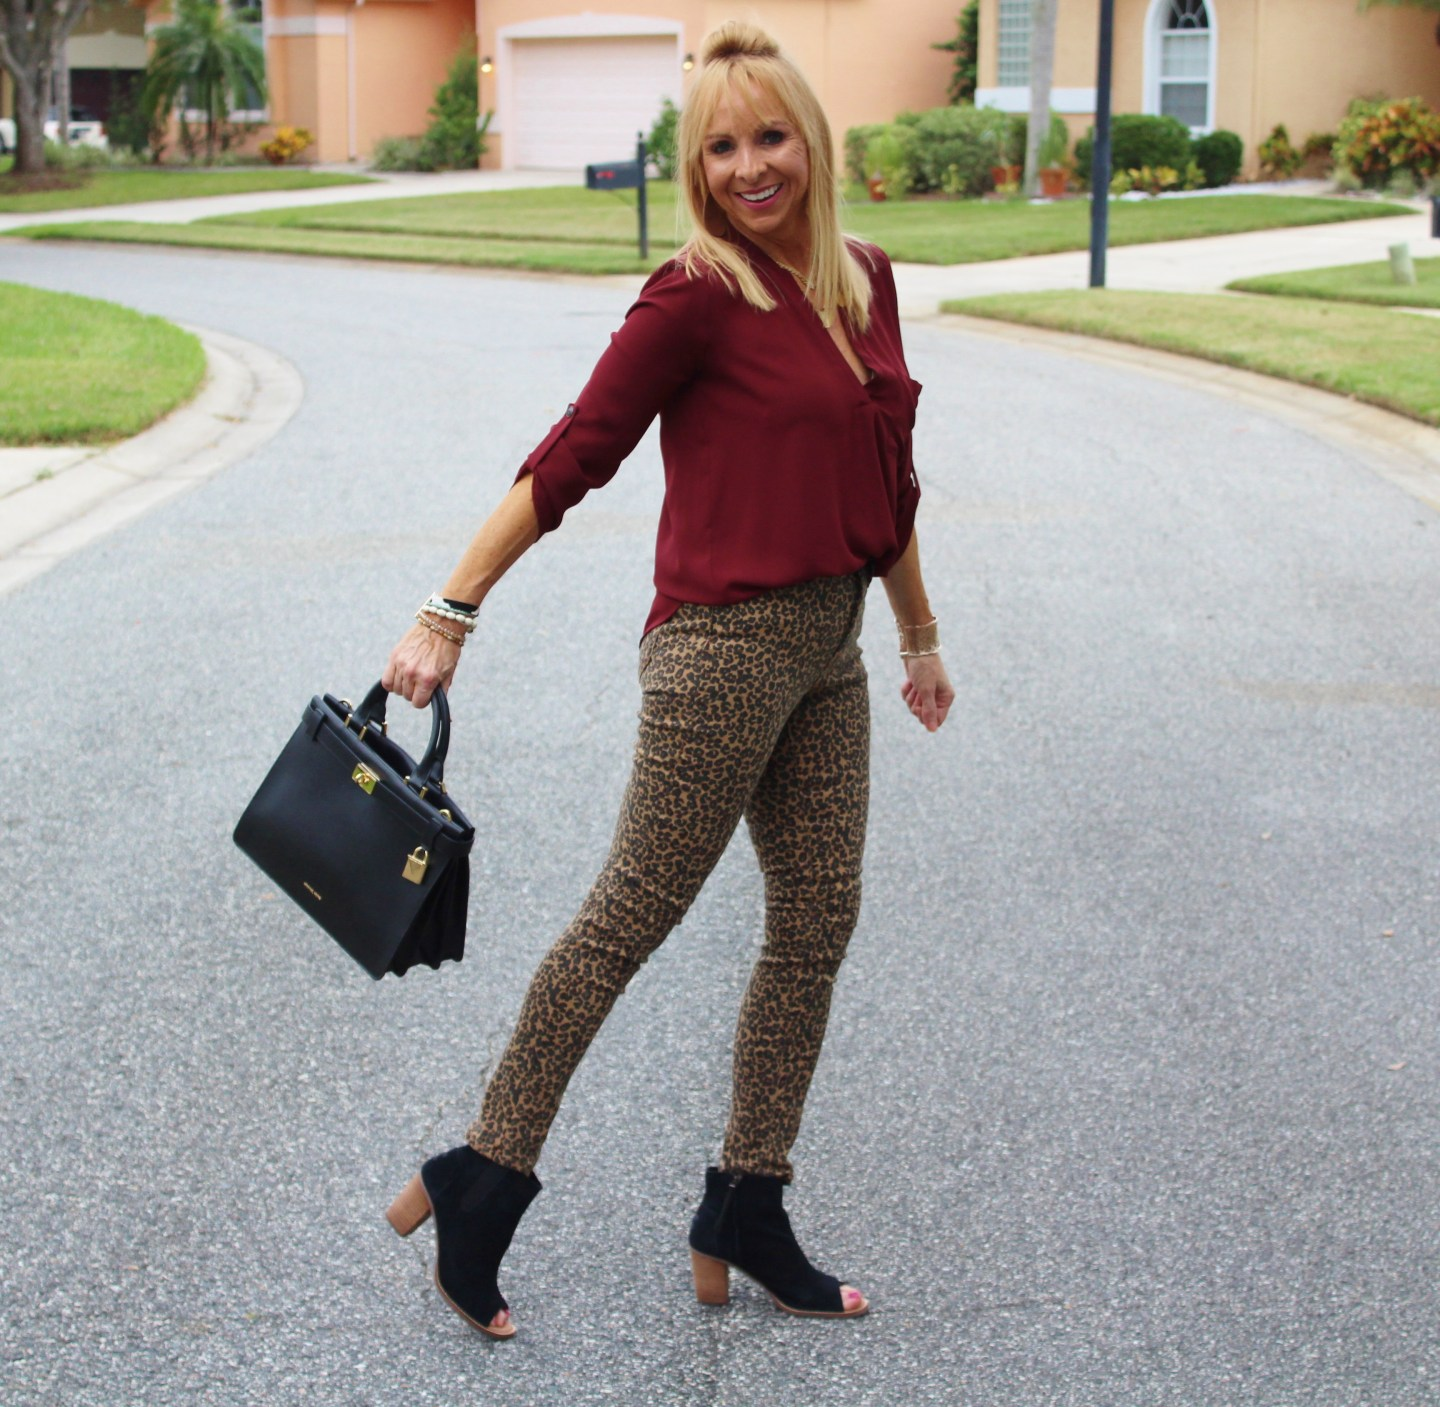 Leopard jeans + Burgundy top